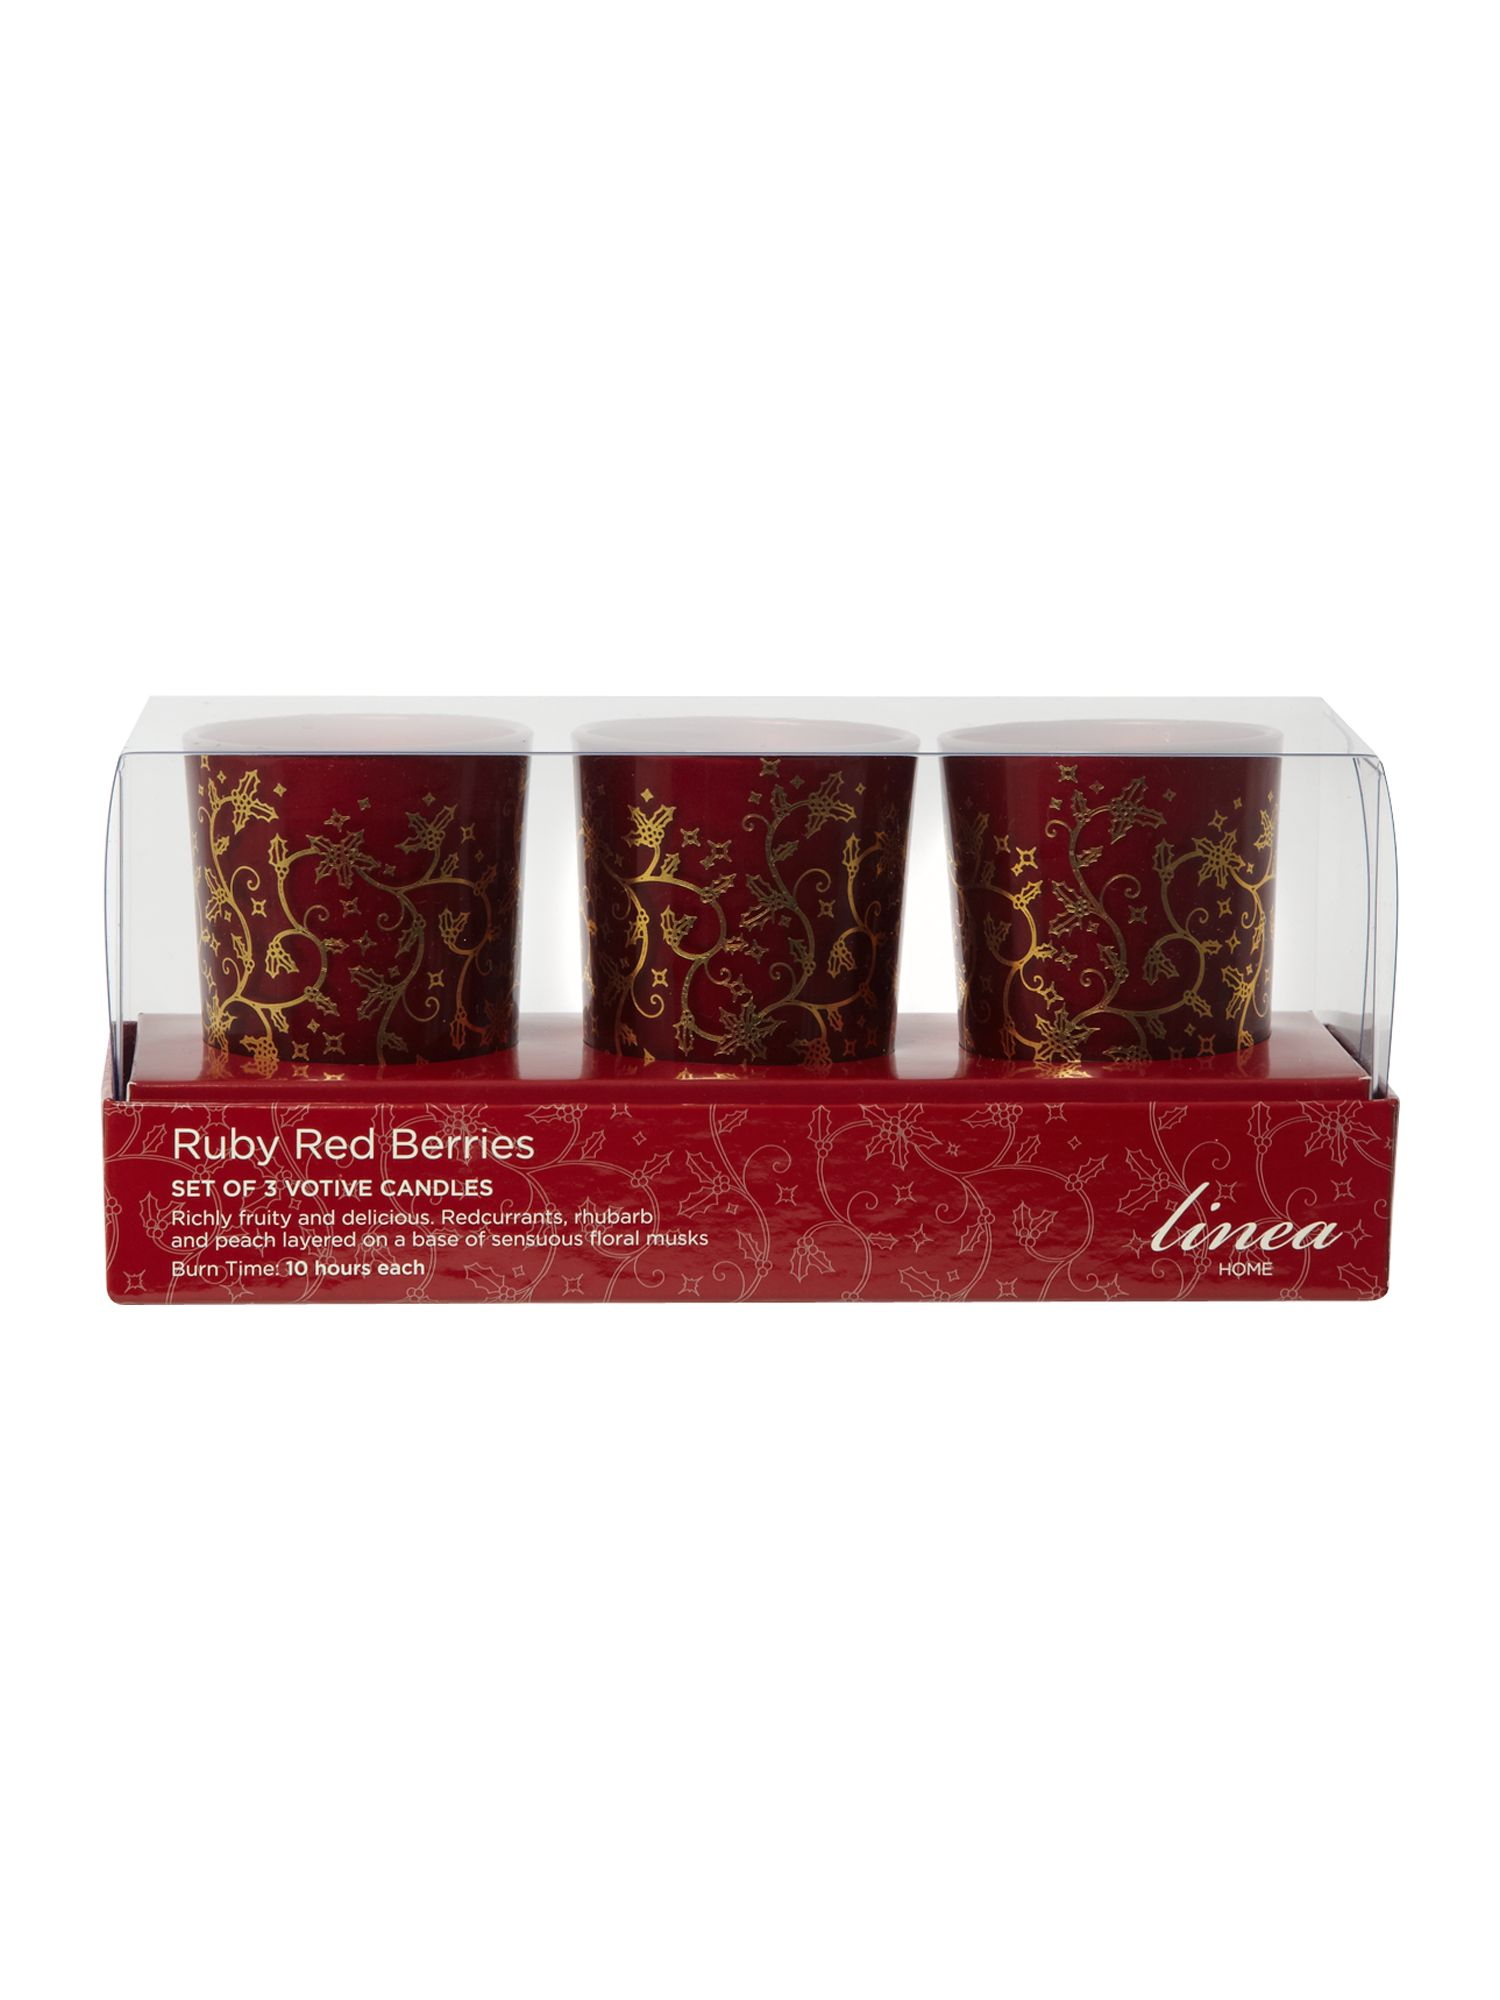 Ruby red berries set of 3 votives